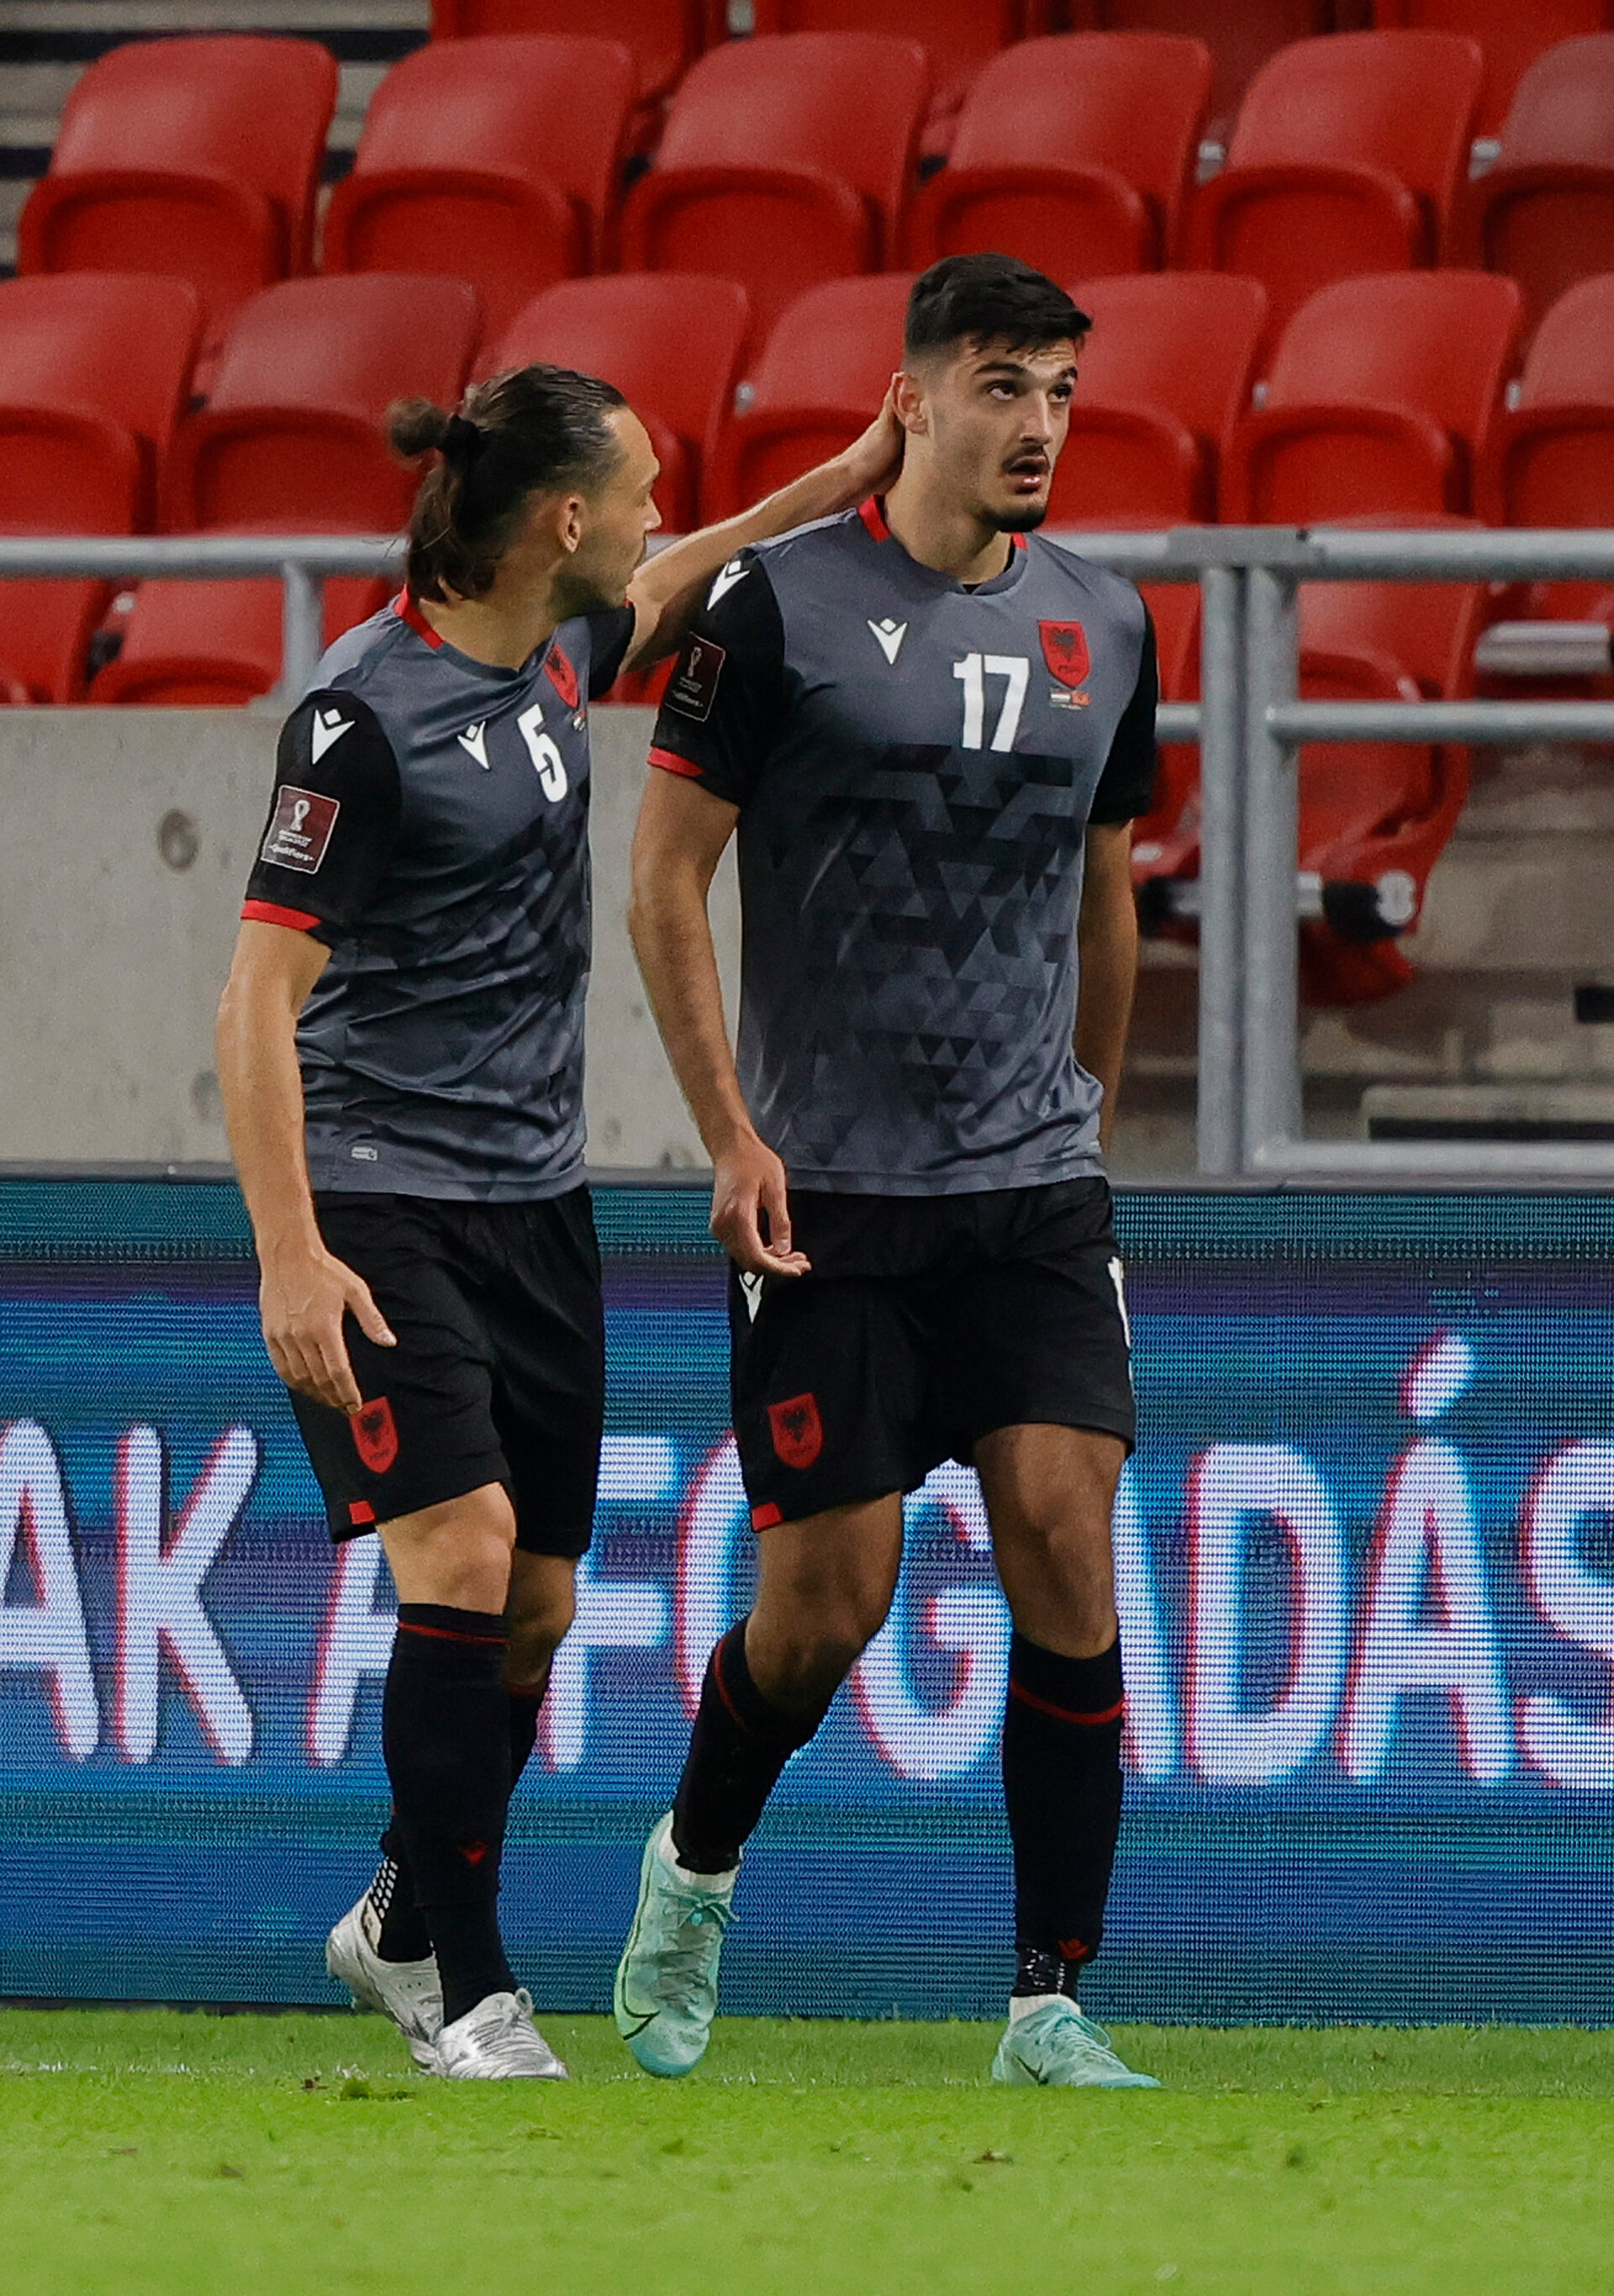 BUDAPEST, HUNGARY - OCTOBER 09: Albania celebrate Armando Broja scoring the first goal during the 2022 FIFA World Cup Qualifier match between Hungary and Albania at Puskas Arena on October 09, 2021 in Budapest, . (Photo by Laszlo Szirtesi/Getty Images)